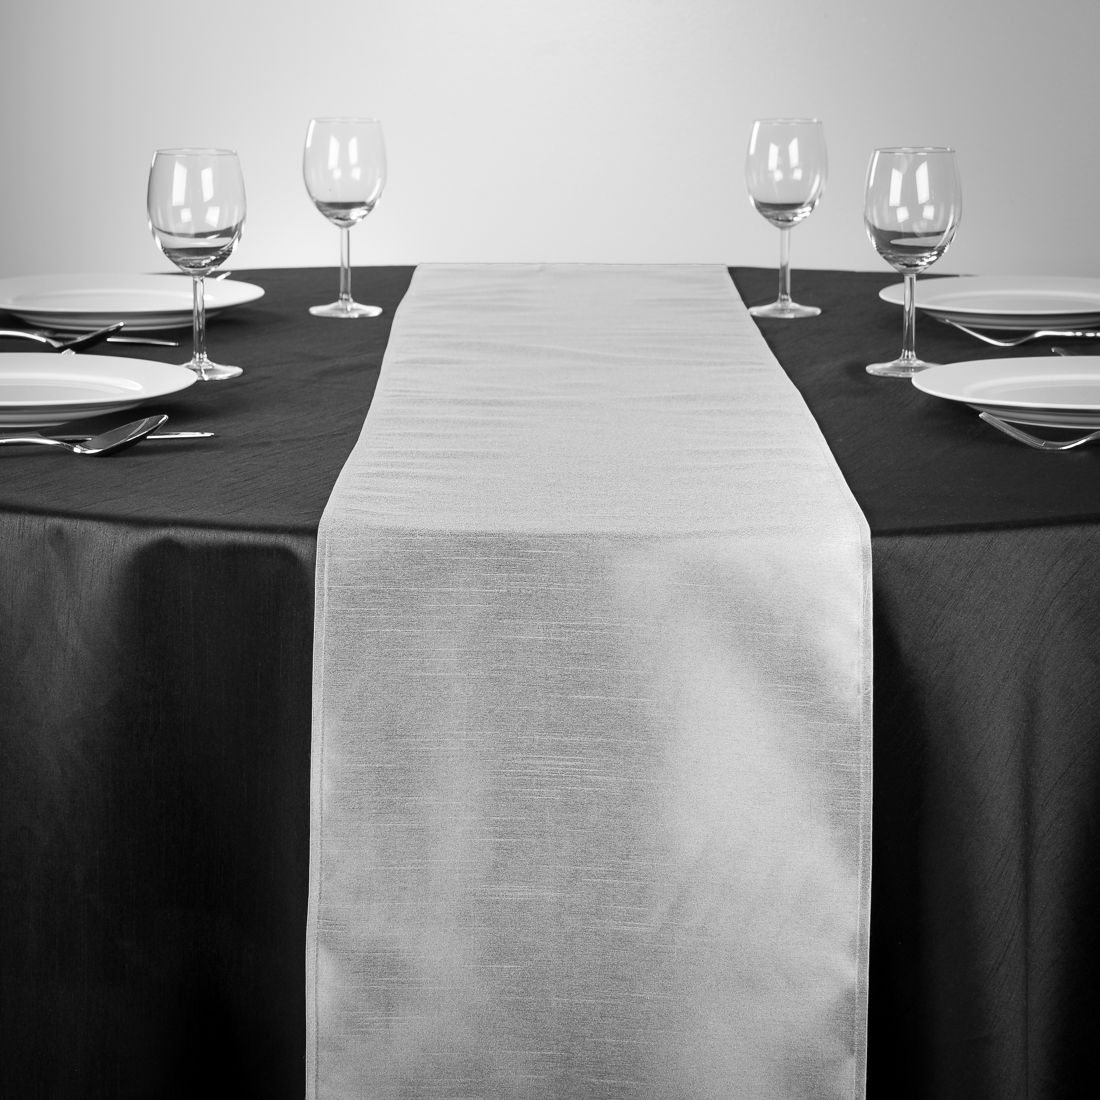 Shantung Silk Table Runners Silver For Weddings And Special Events |